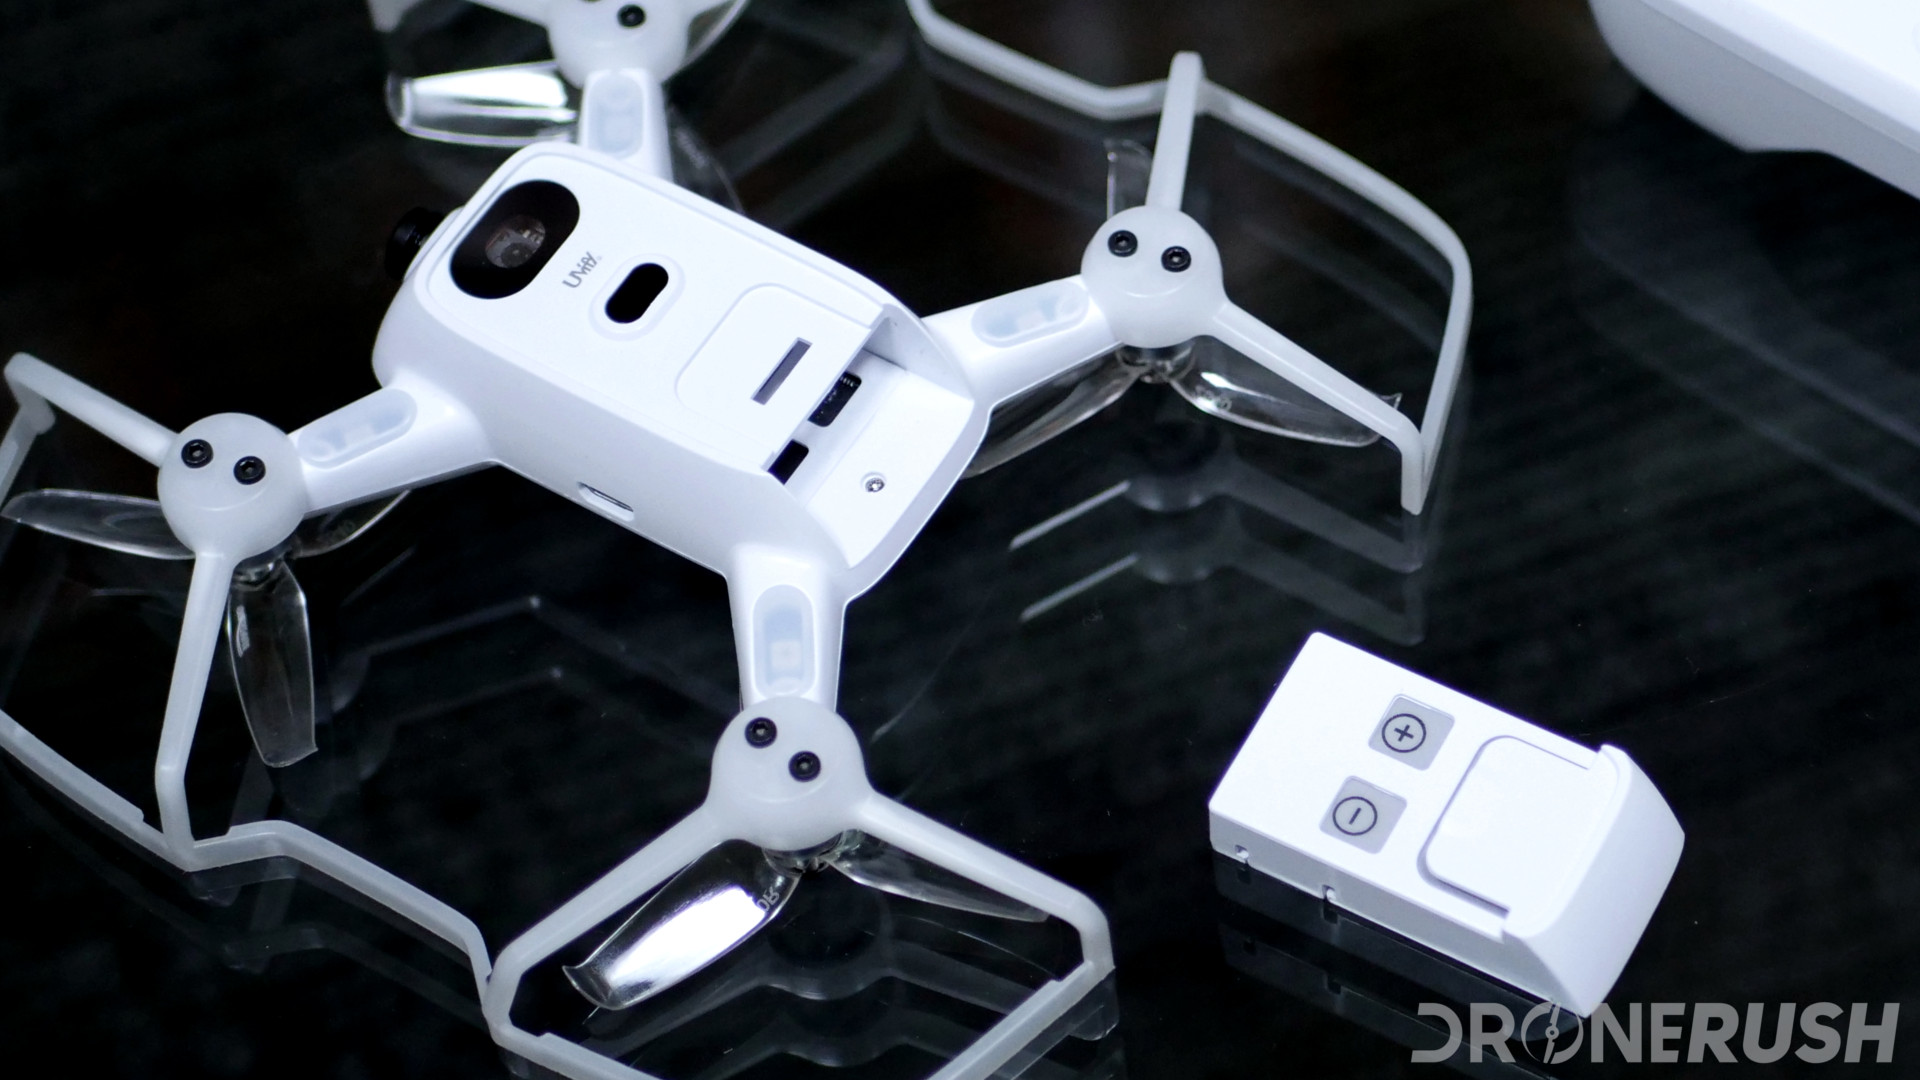 Uvify OOri unboxing drone and battery